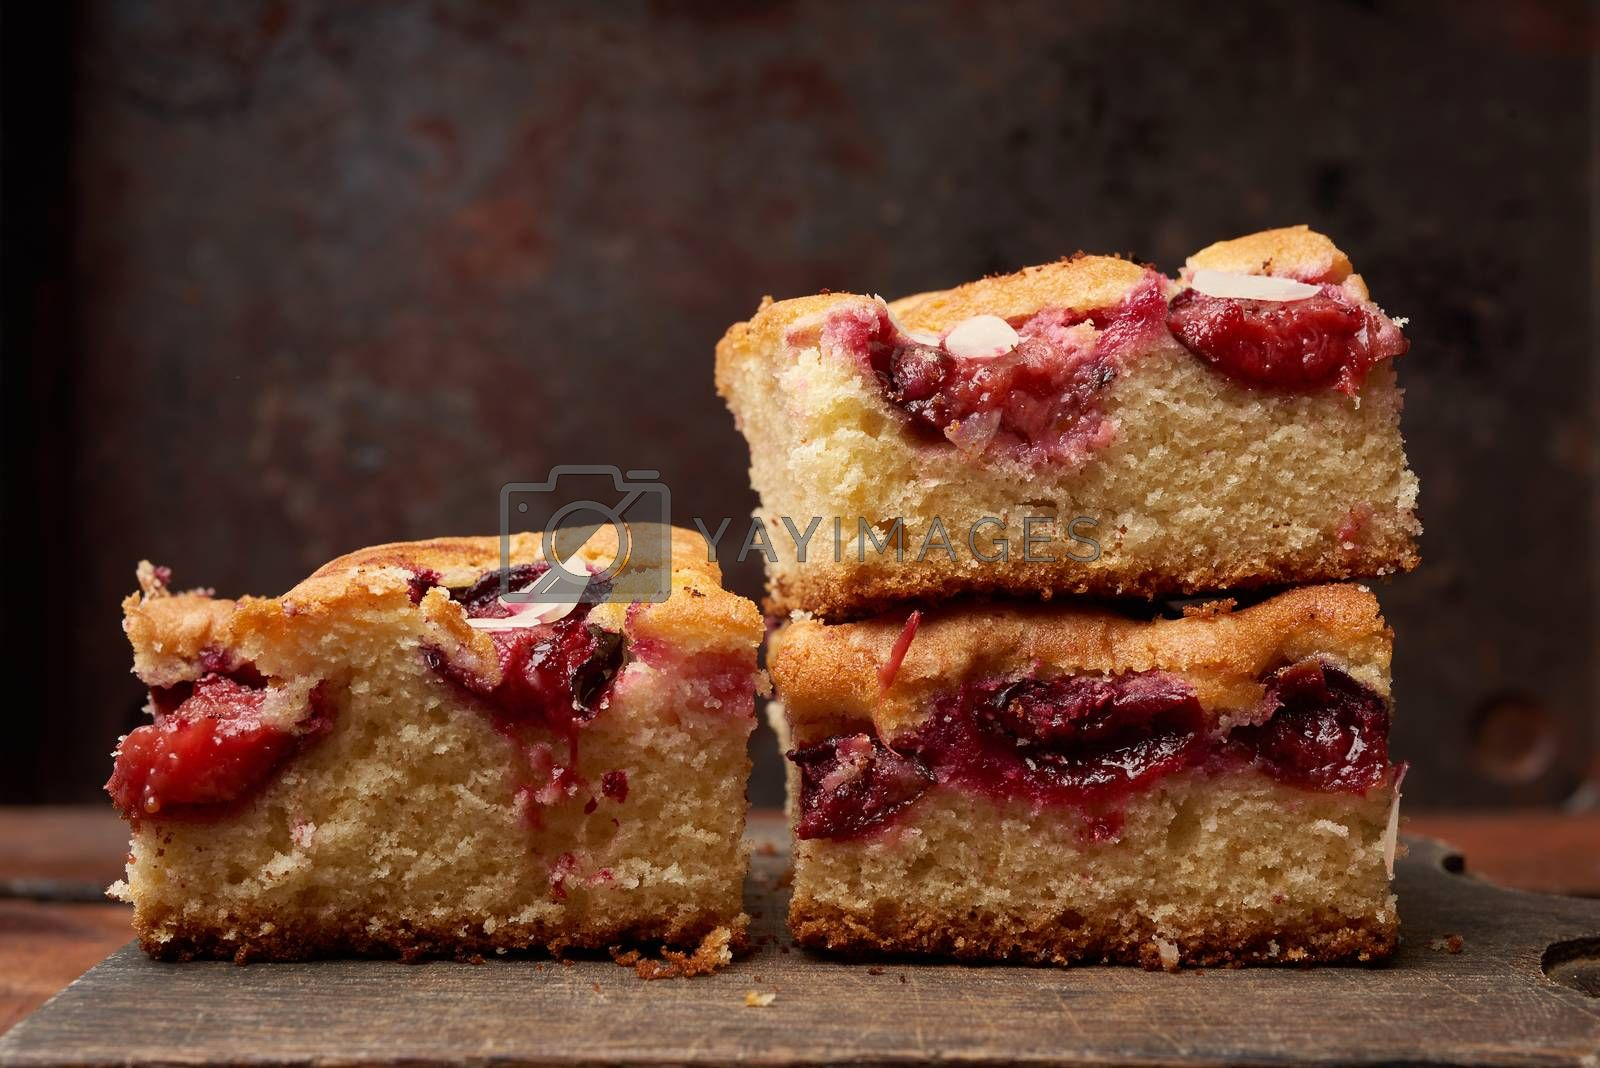 stack of square baked sponge cake slices with plums on wooden kitchen board, close up